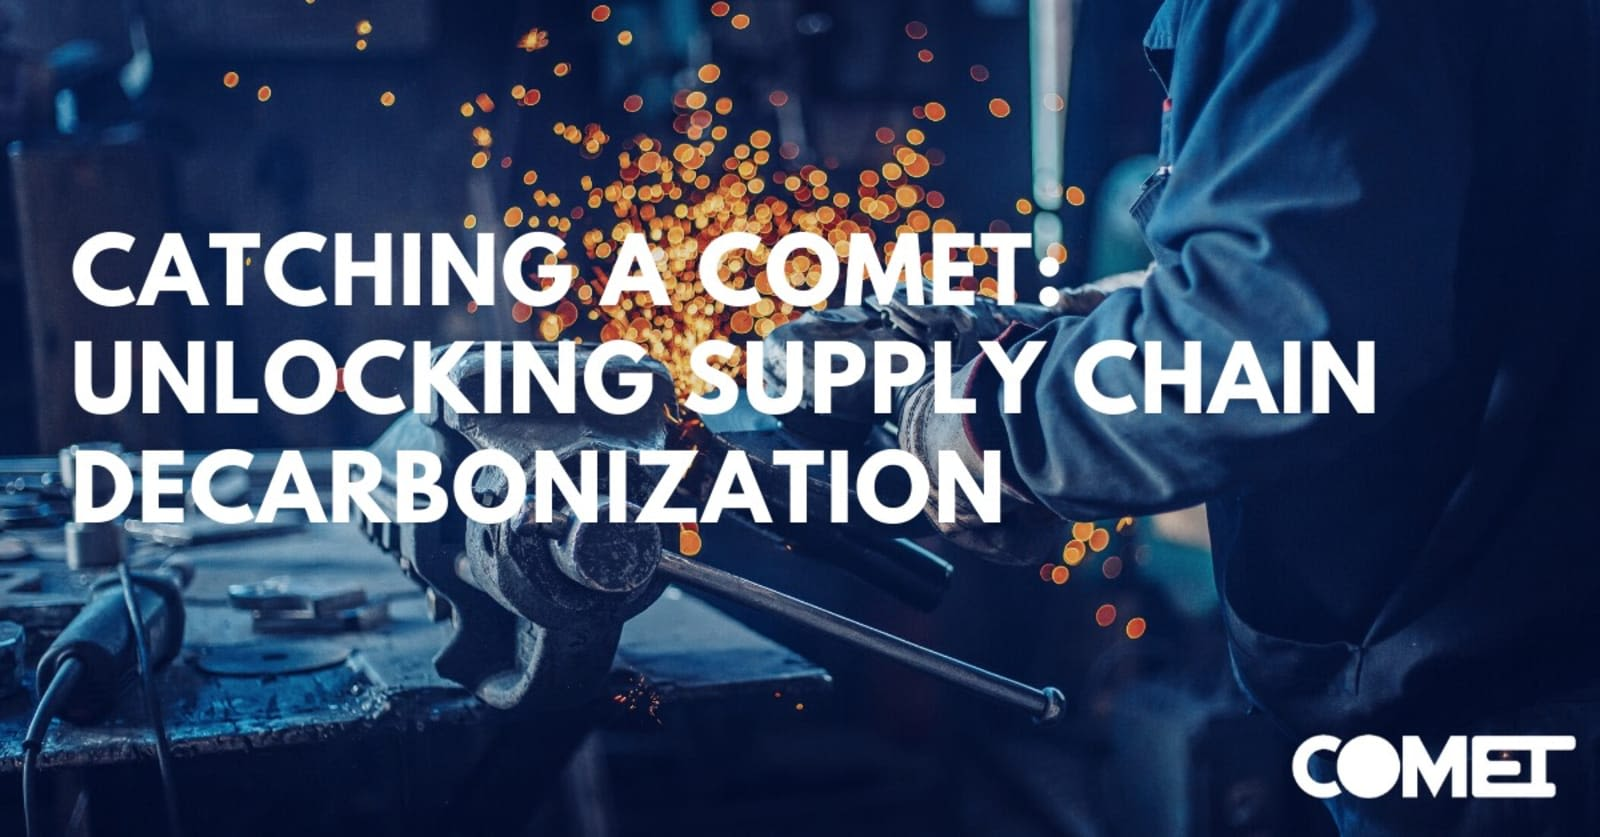 Catching a comet: Unlocking supply chain decarbonization.  White text on an image of an engineer soldering machinery